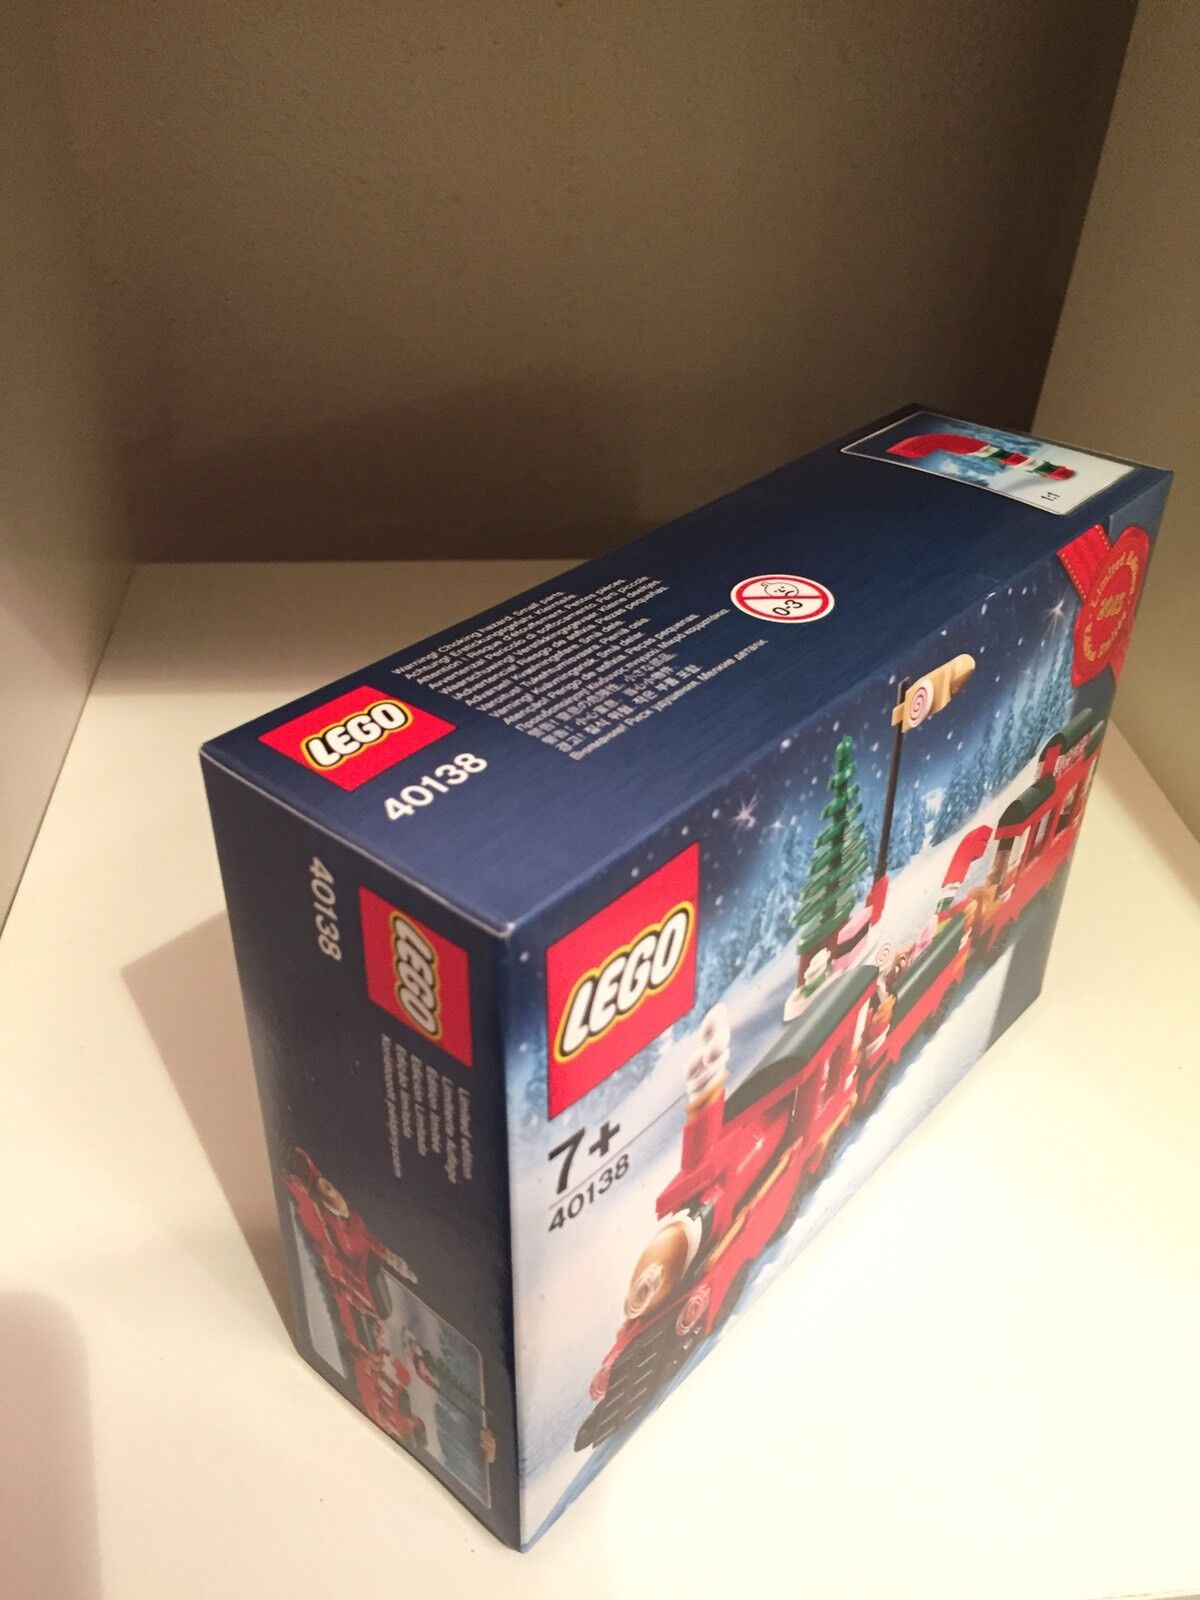 LEGO CHRISTMAS TRAIN TRAIN TRAIN 40138 LIMITED EDITION EXCLUSIVE HOLIDAY 2015 NEW SEALED 6e2fd6